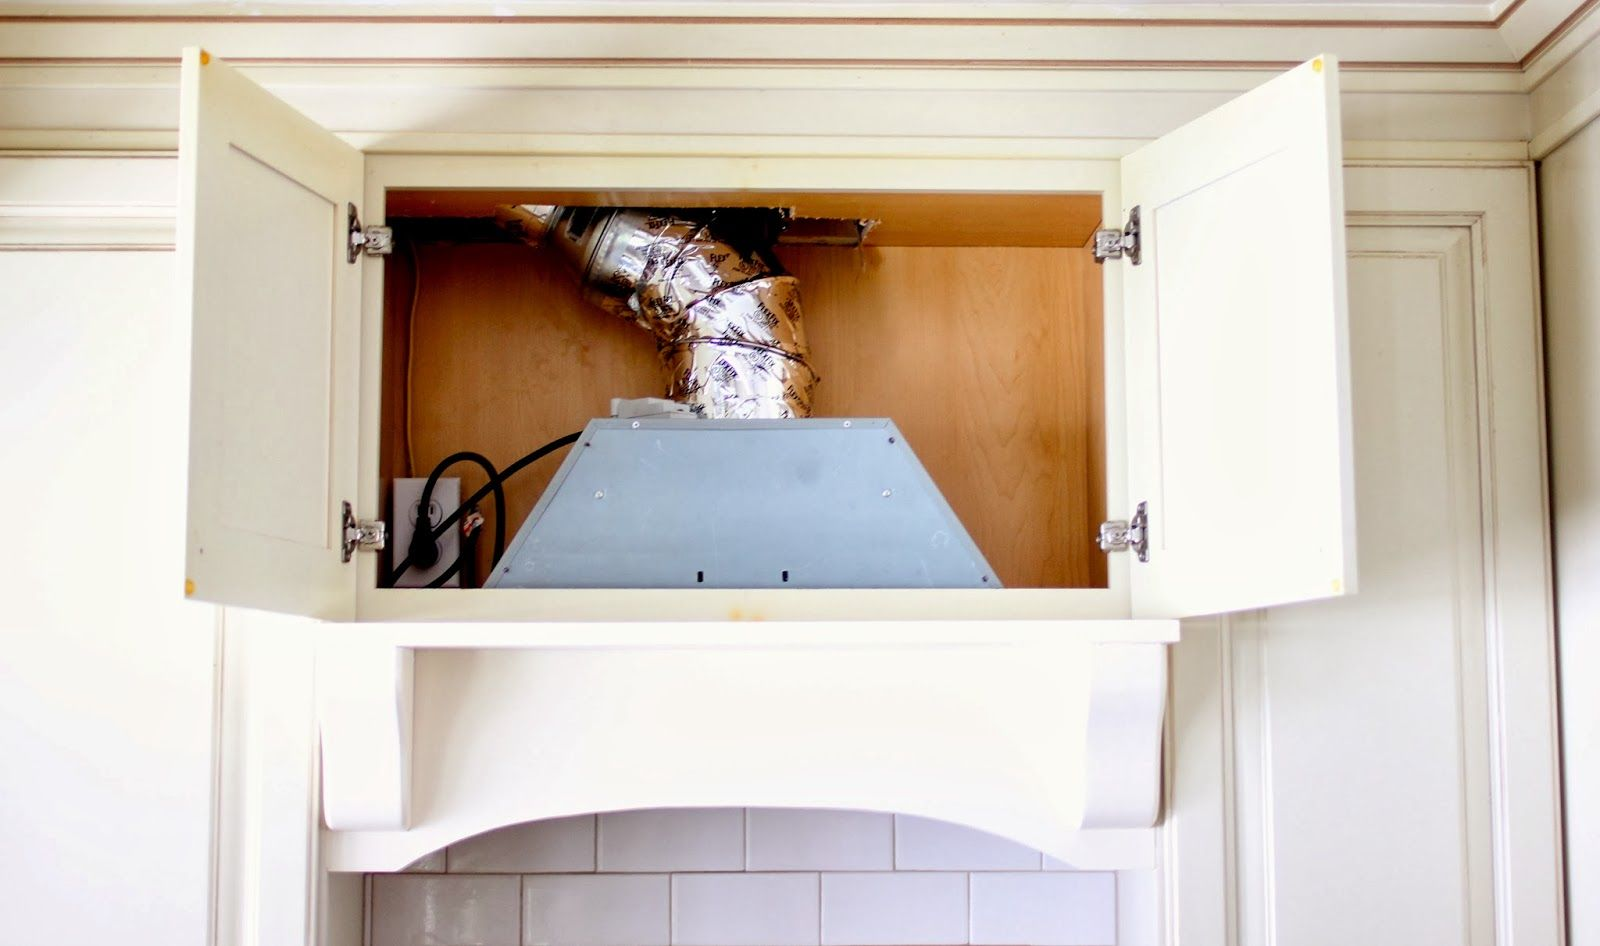 Diy Mantel Hood Tutorial Kitchen Range Hood Diy Mantel Kitchen Hoods